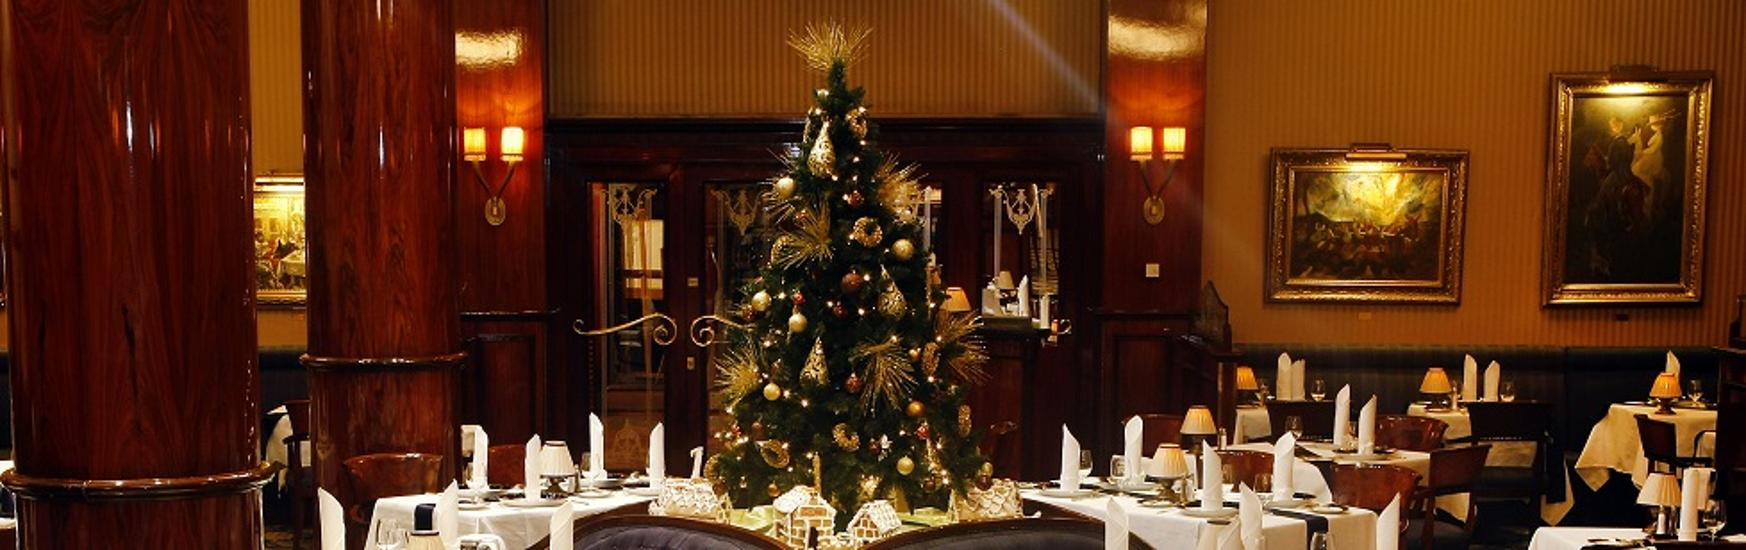 Celebrate Christmas @ Gundel Restaurant In Budapest